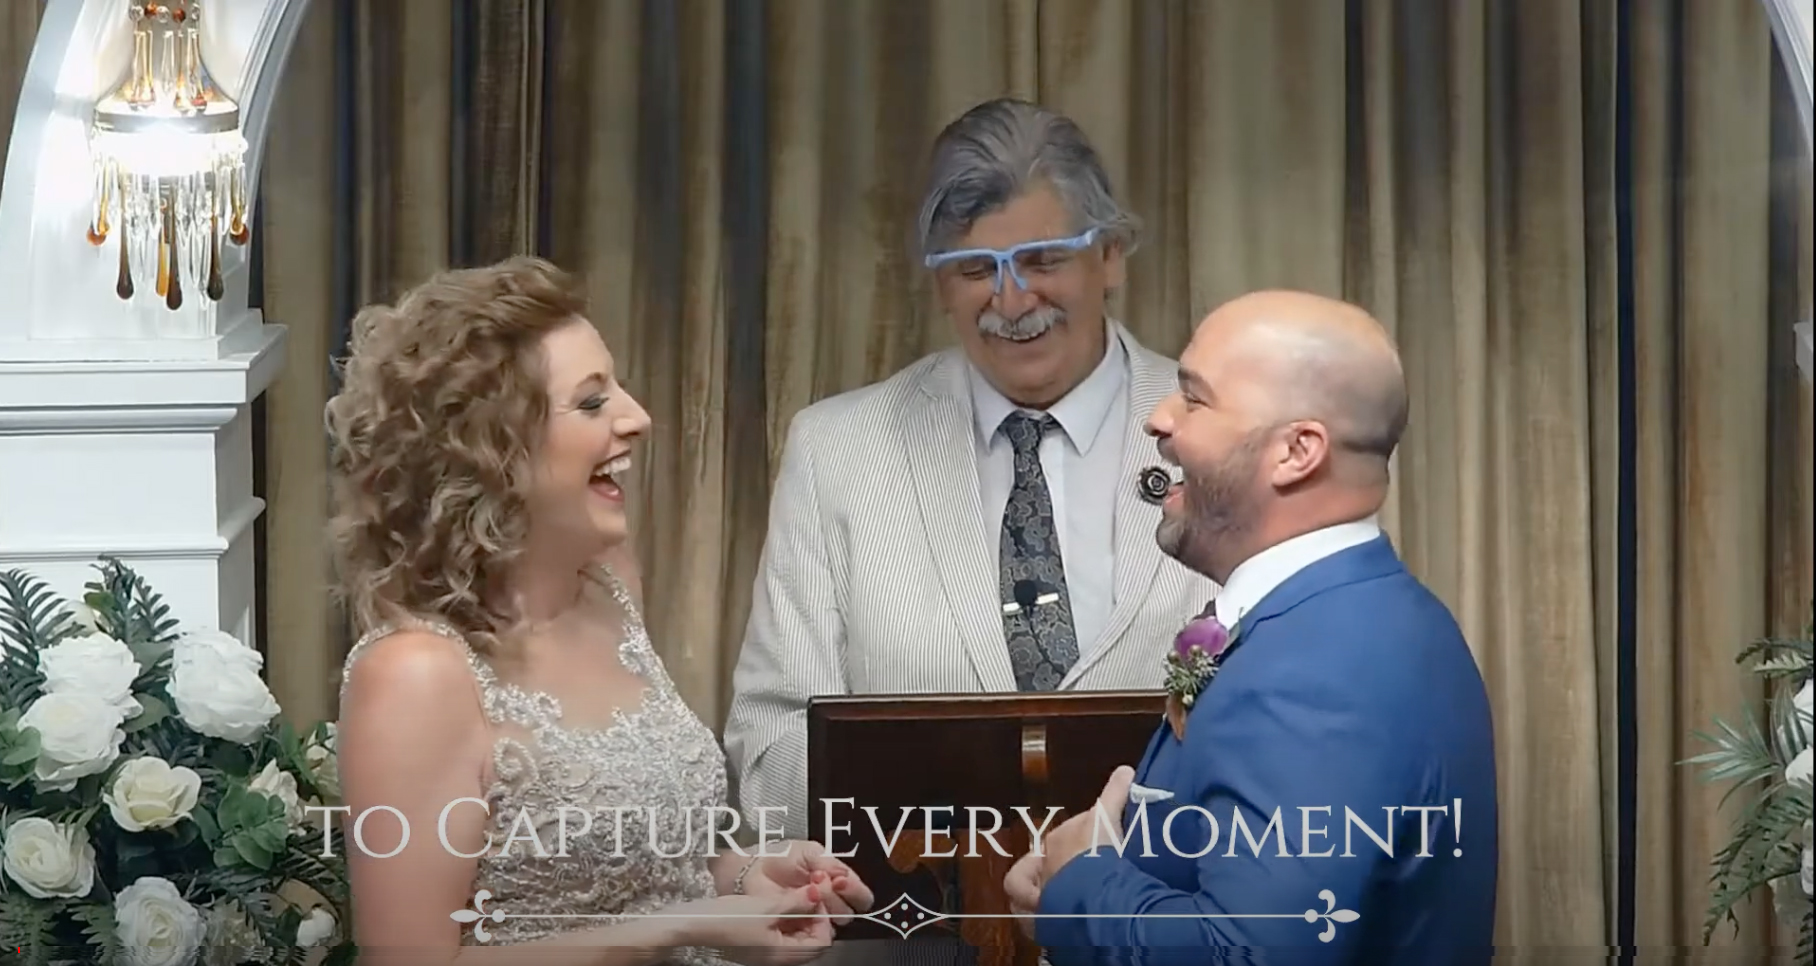 French Quarter Wedding Chapel Now Offers Live Streaming